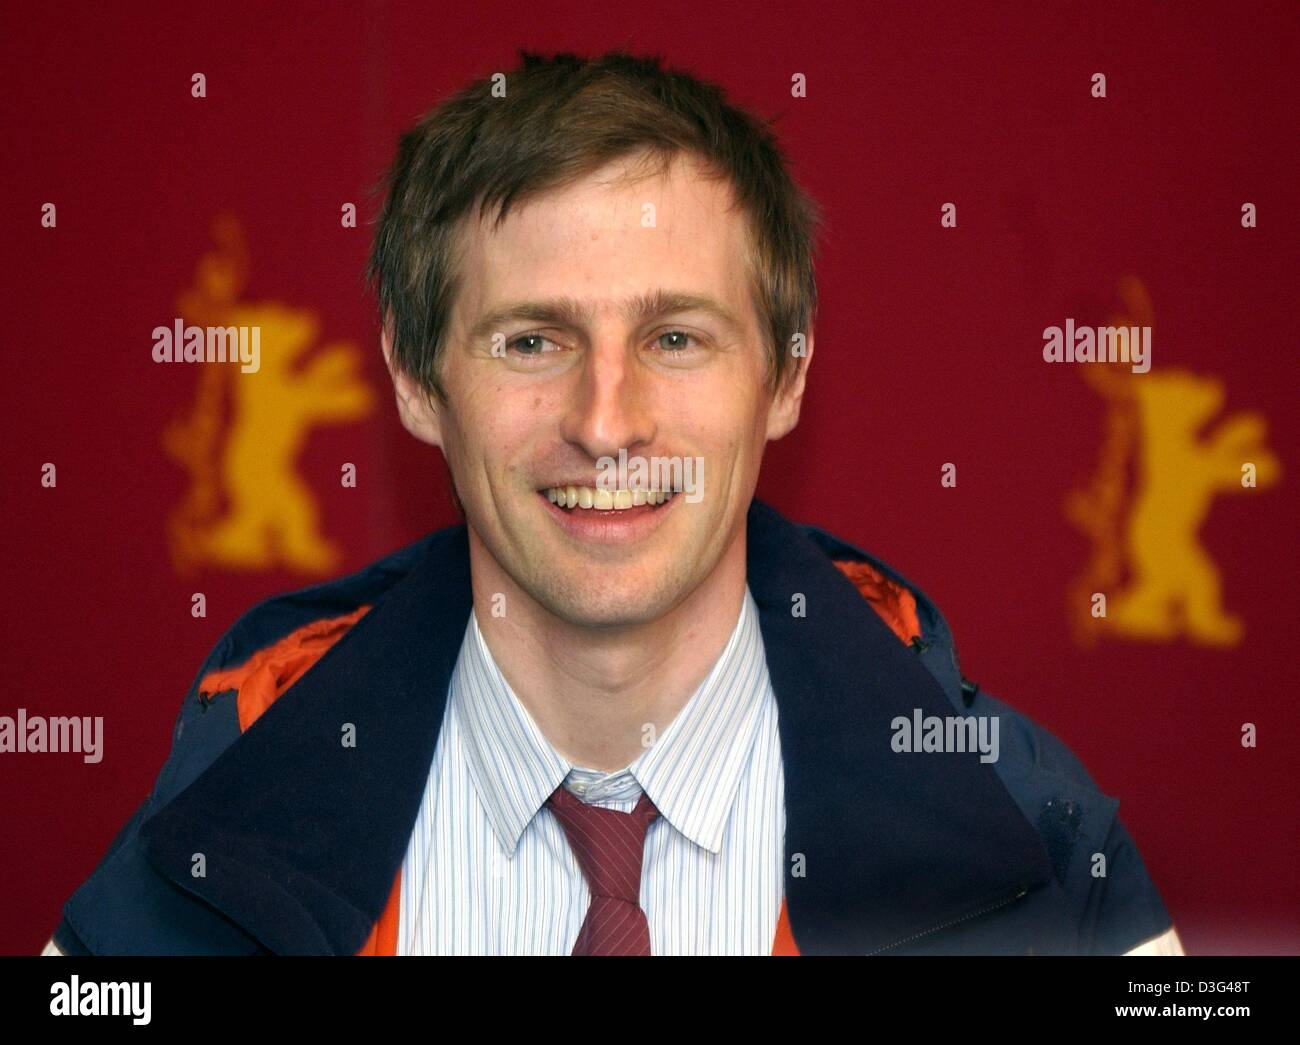 dpa) - US film director Spike Jonze smiles during the